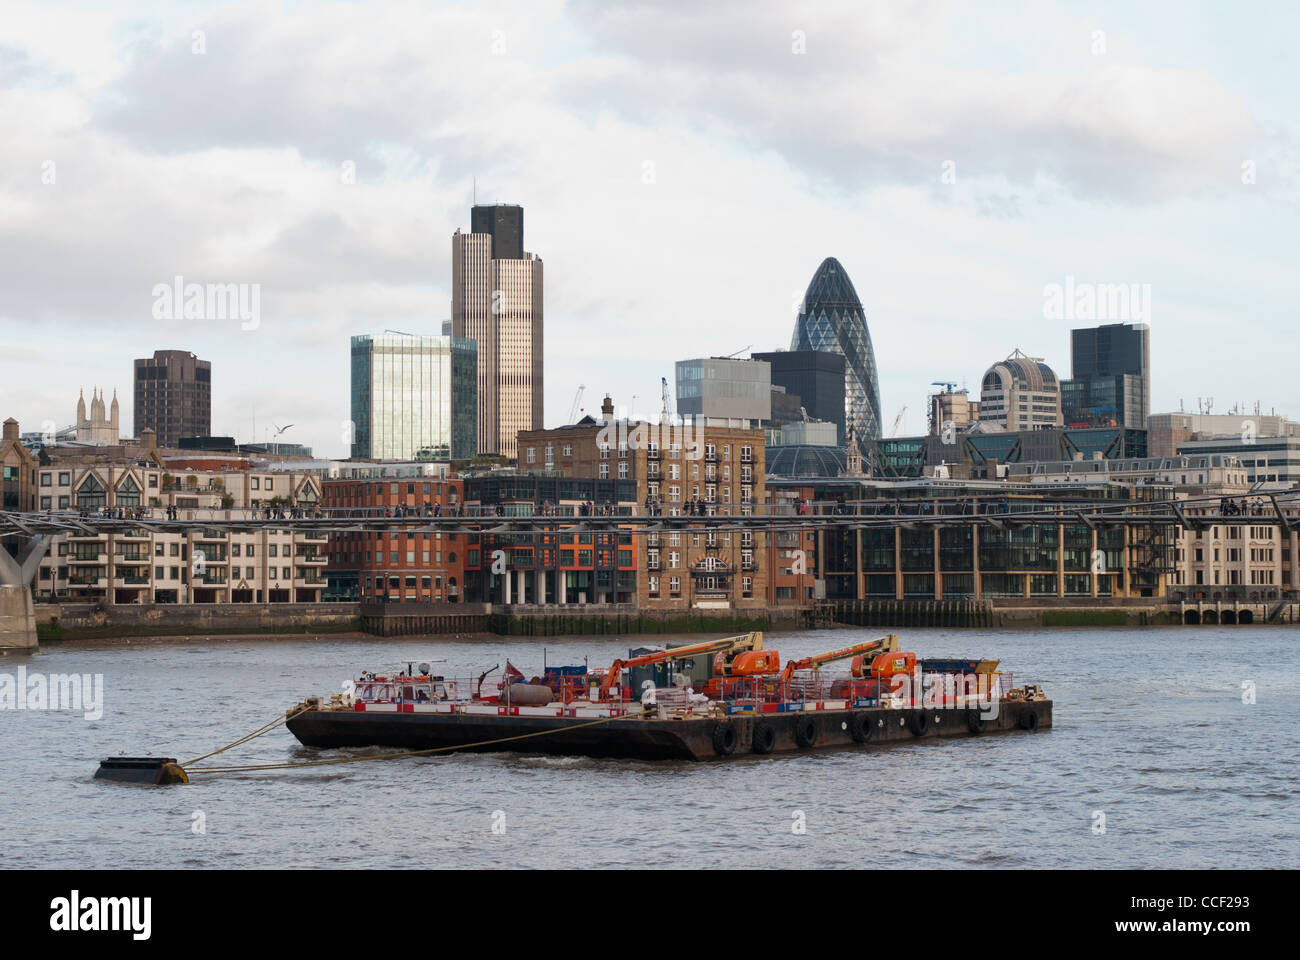 Commercial Barge On The River Thames With The City In The